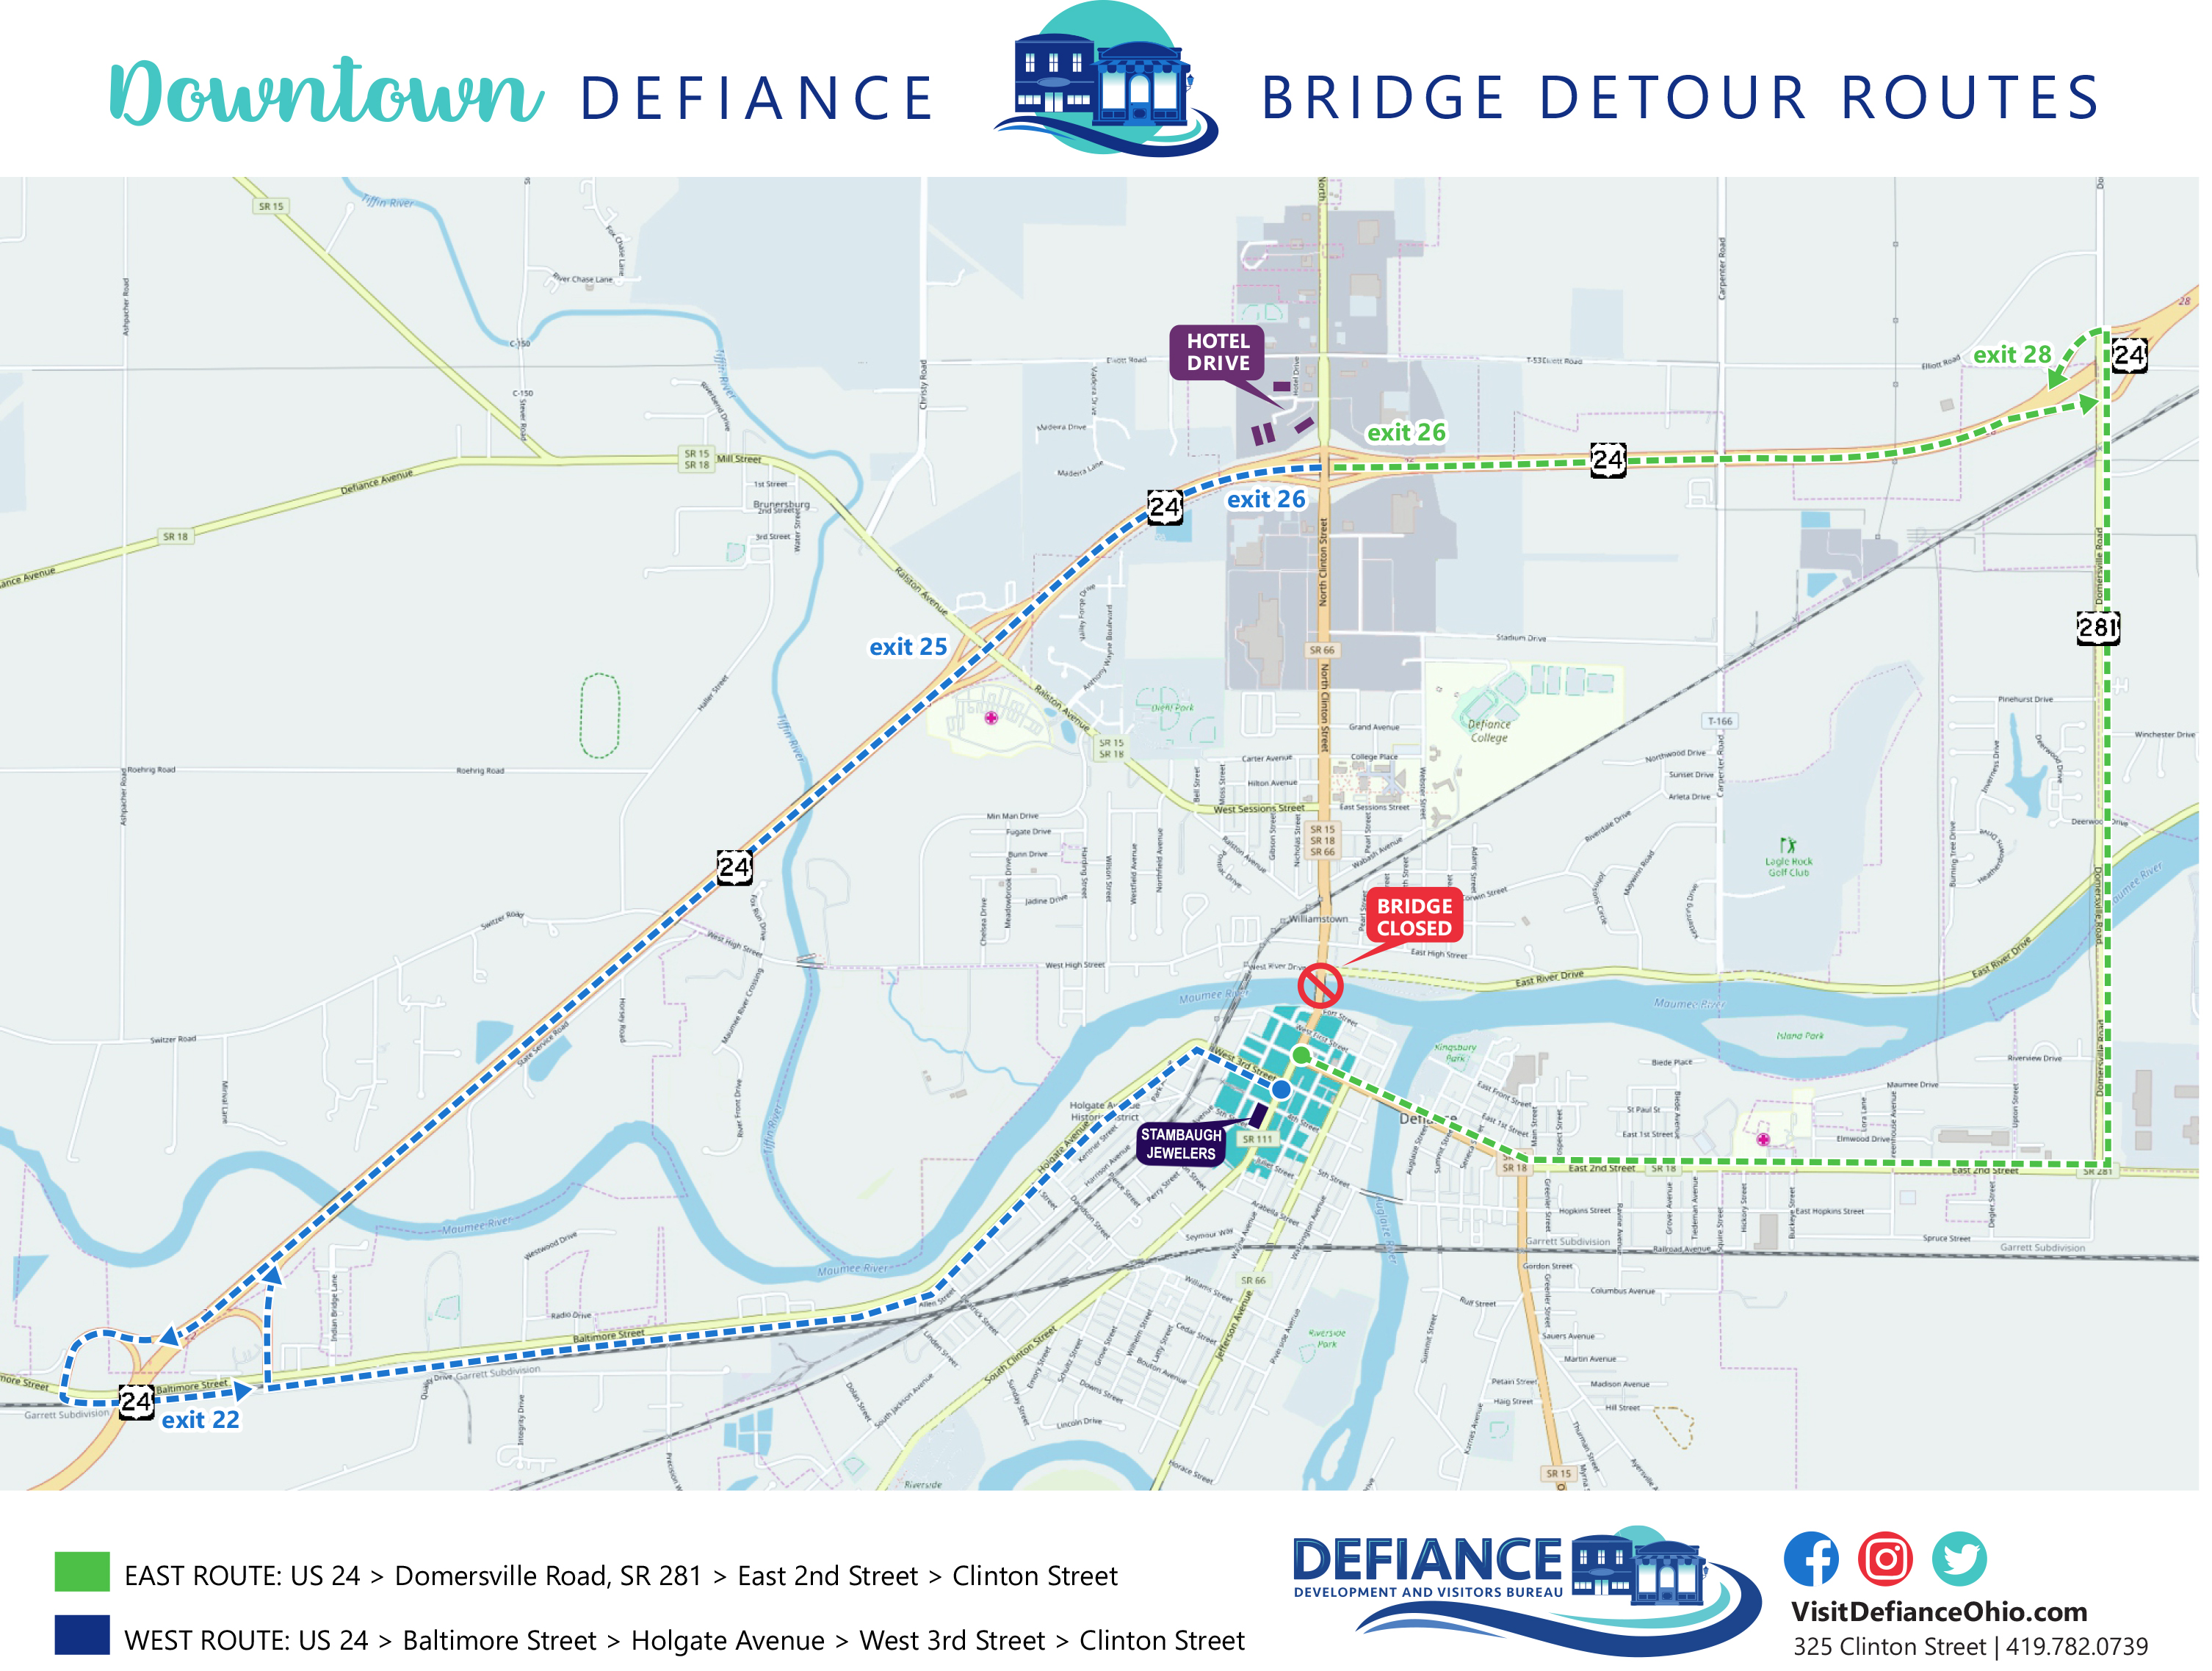 Clinton Street Bridge Closure Detour